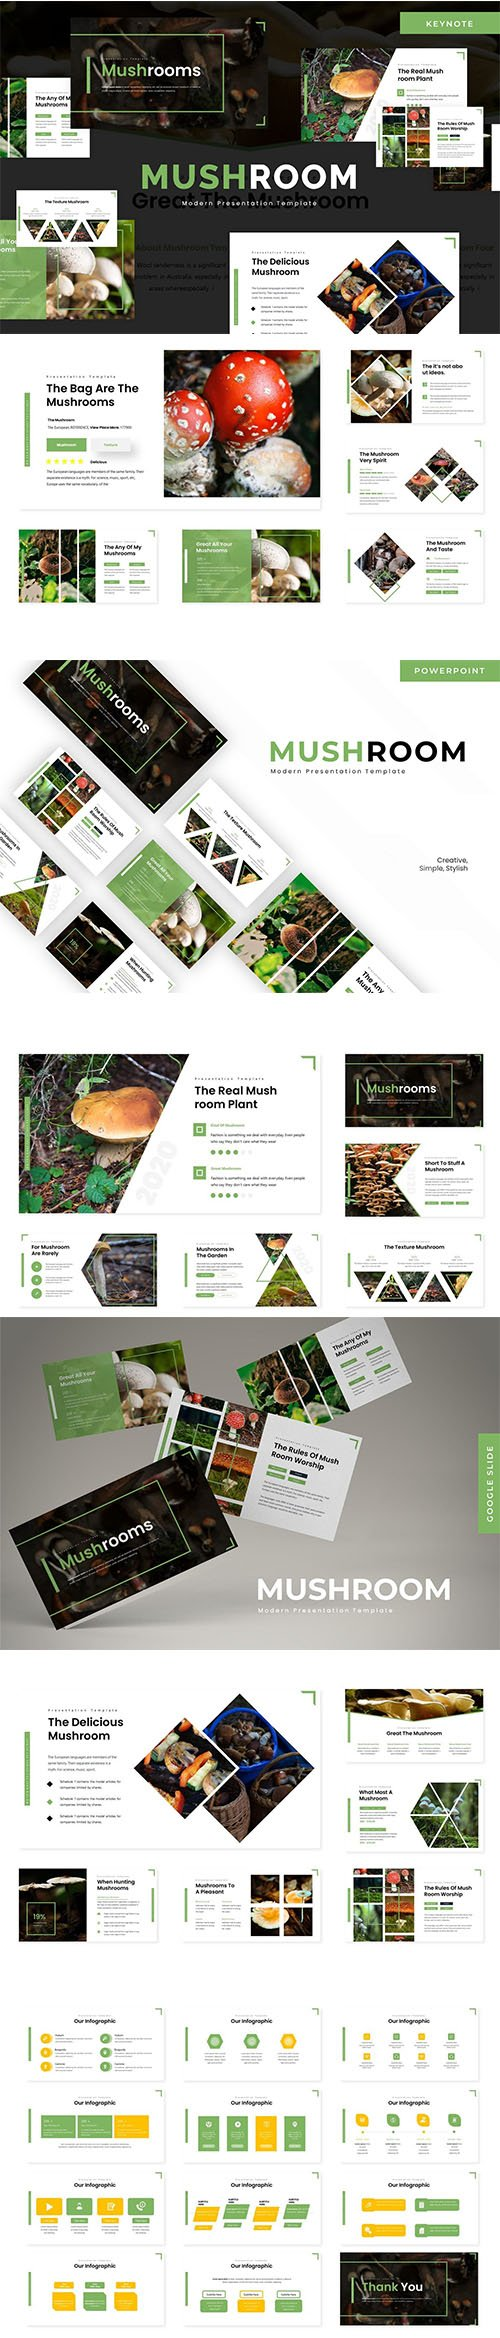 Mushroom - Powerpoint, Keynote Template and Google Slide Template